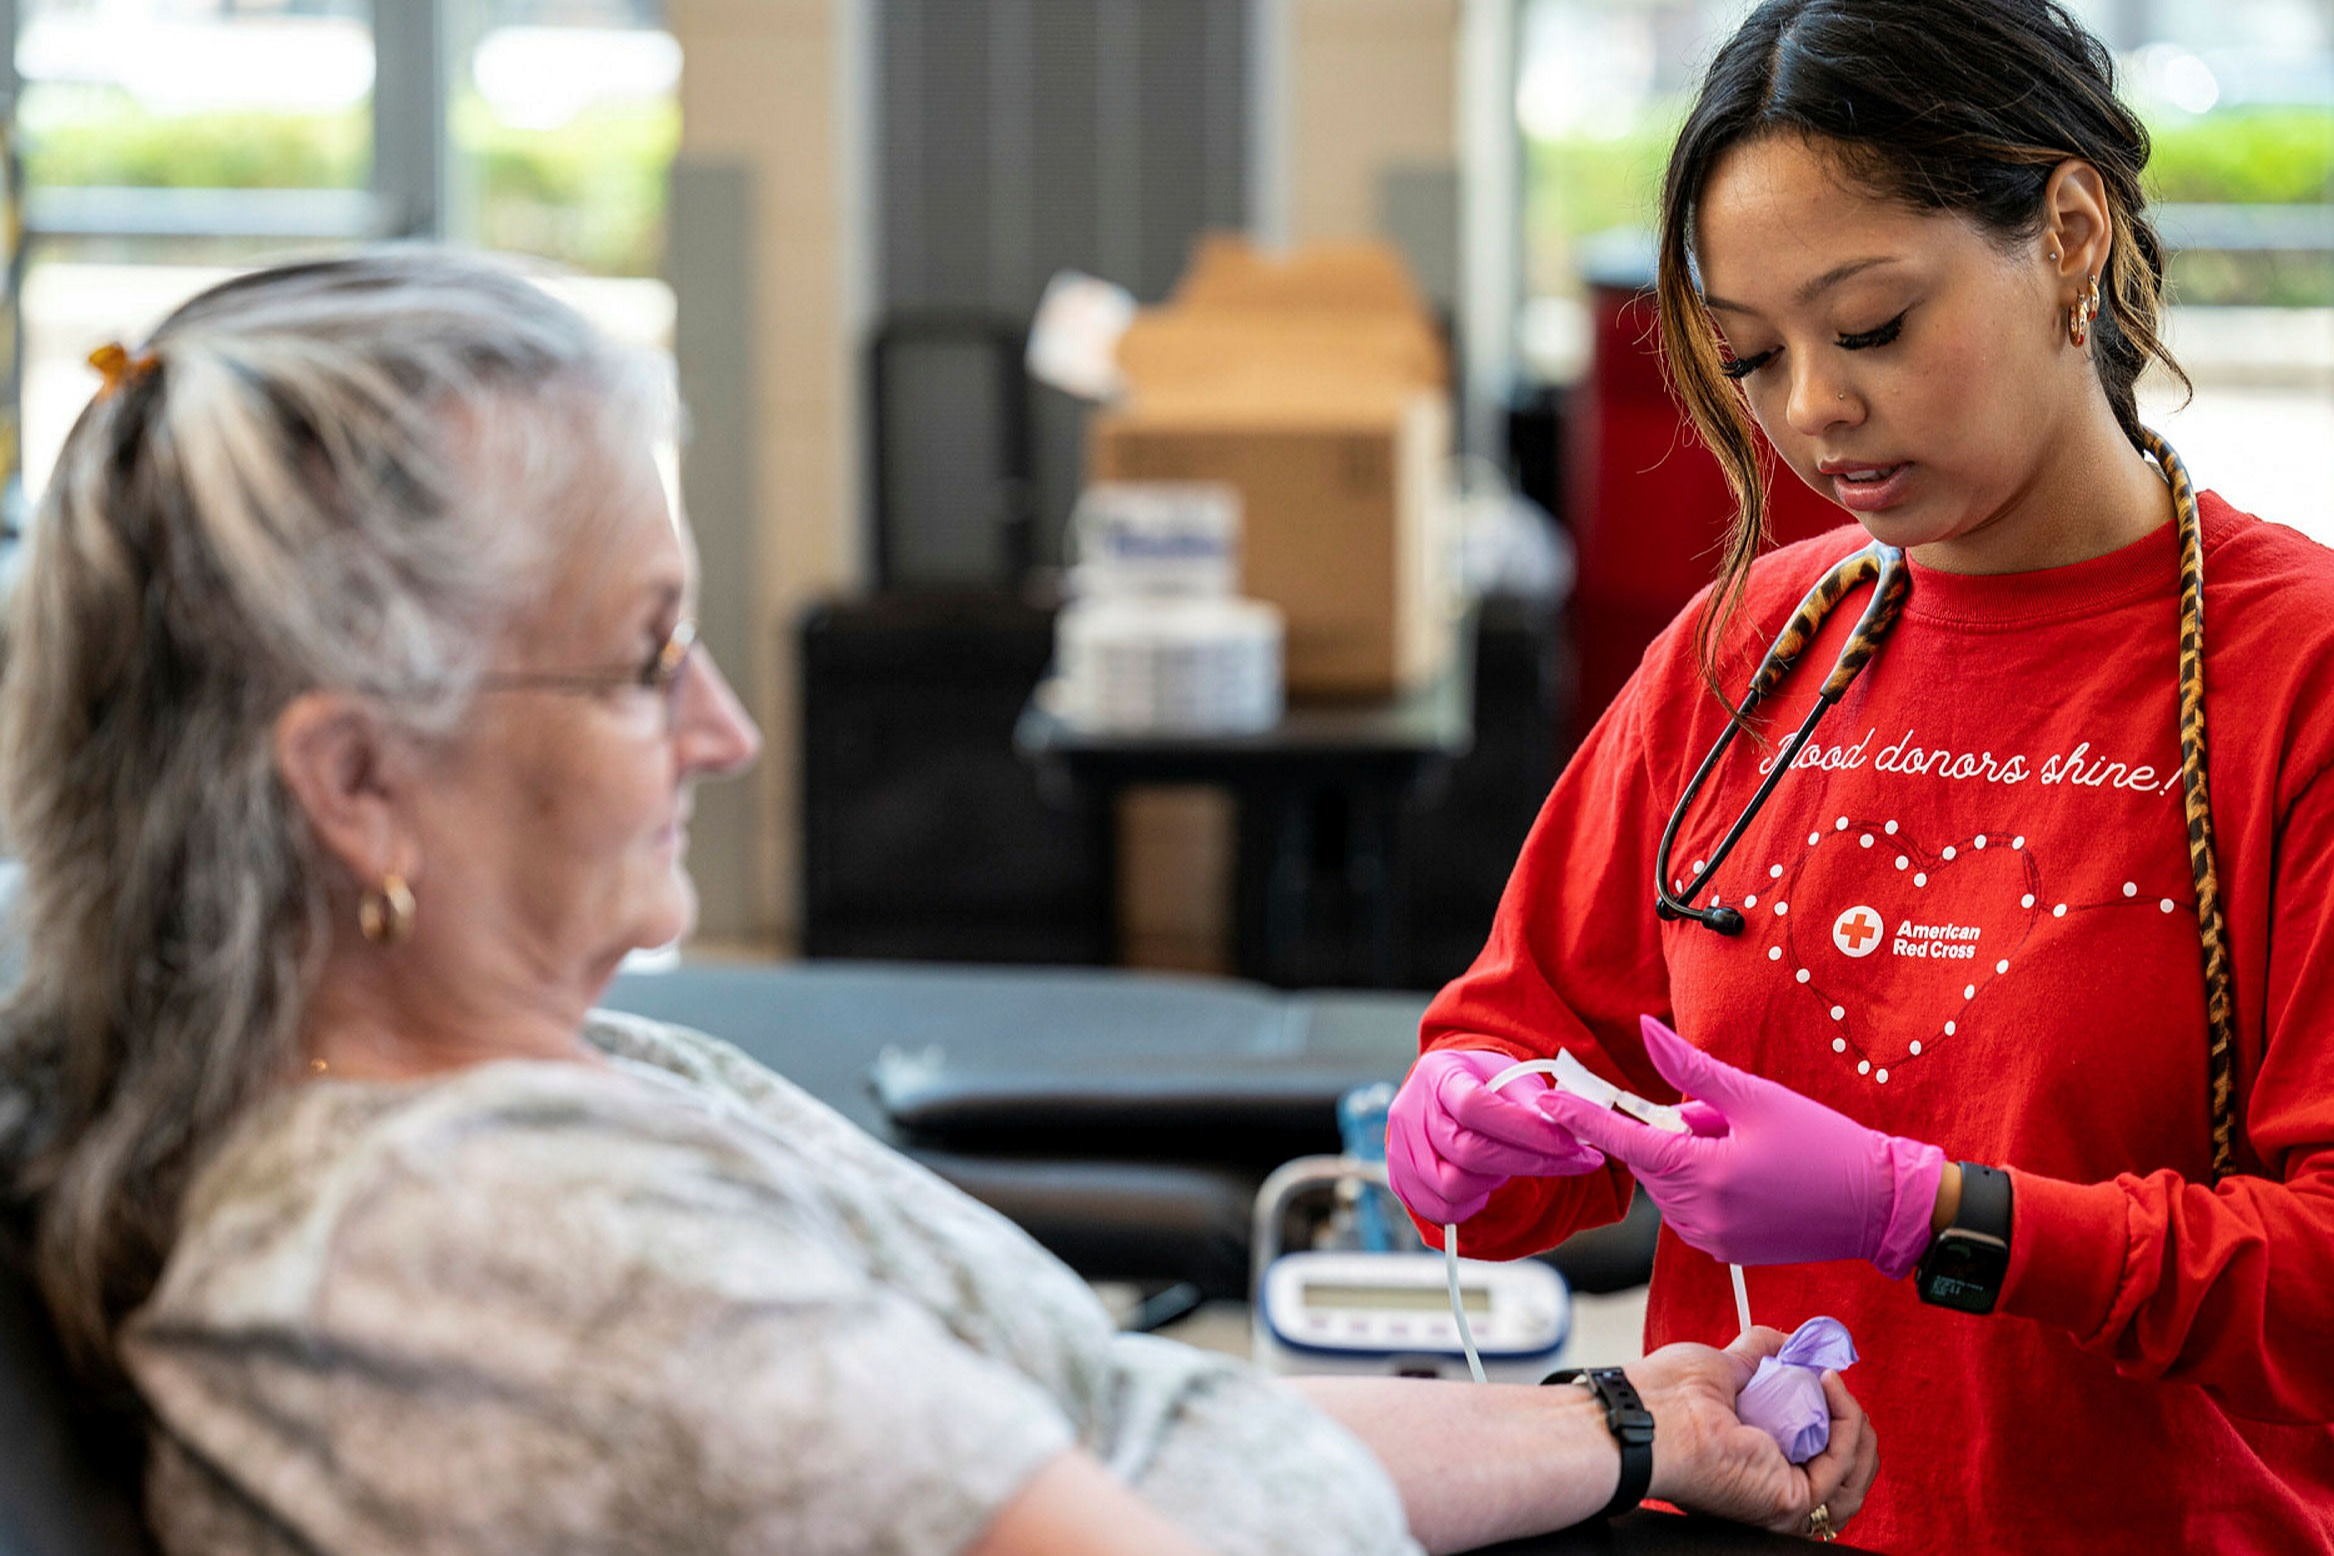 A donor gives blood at an exhibition centre in Louisville, Kentucky. A rush of elective surgery postponed by the Covid-19 pandemic has created a shortage of blood products